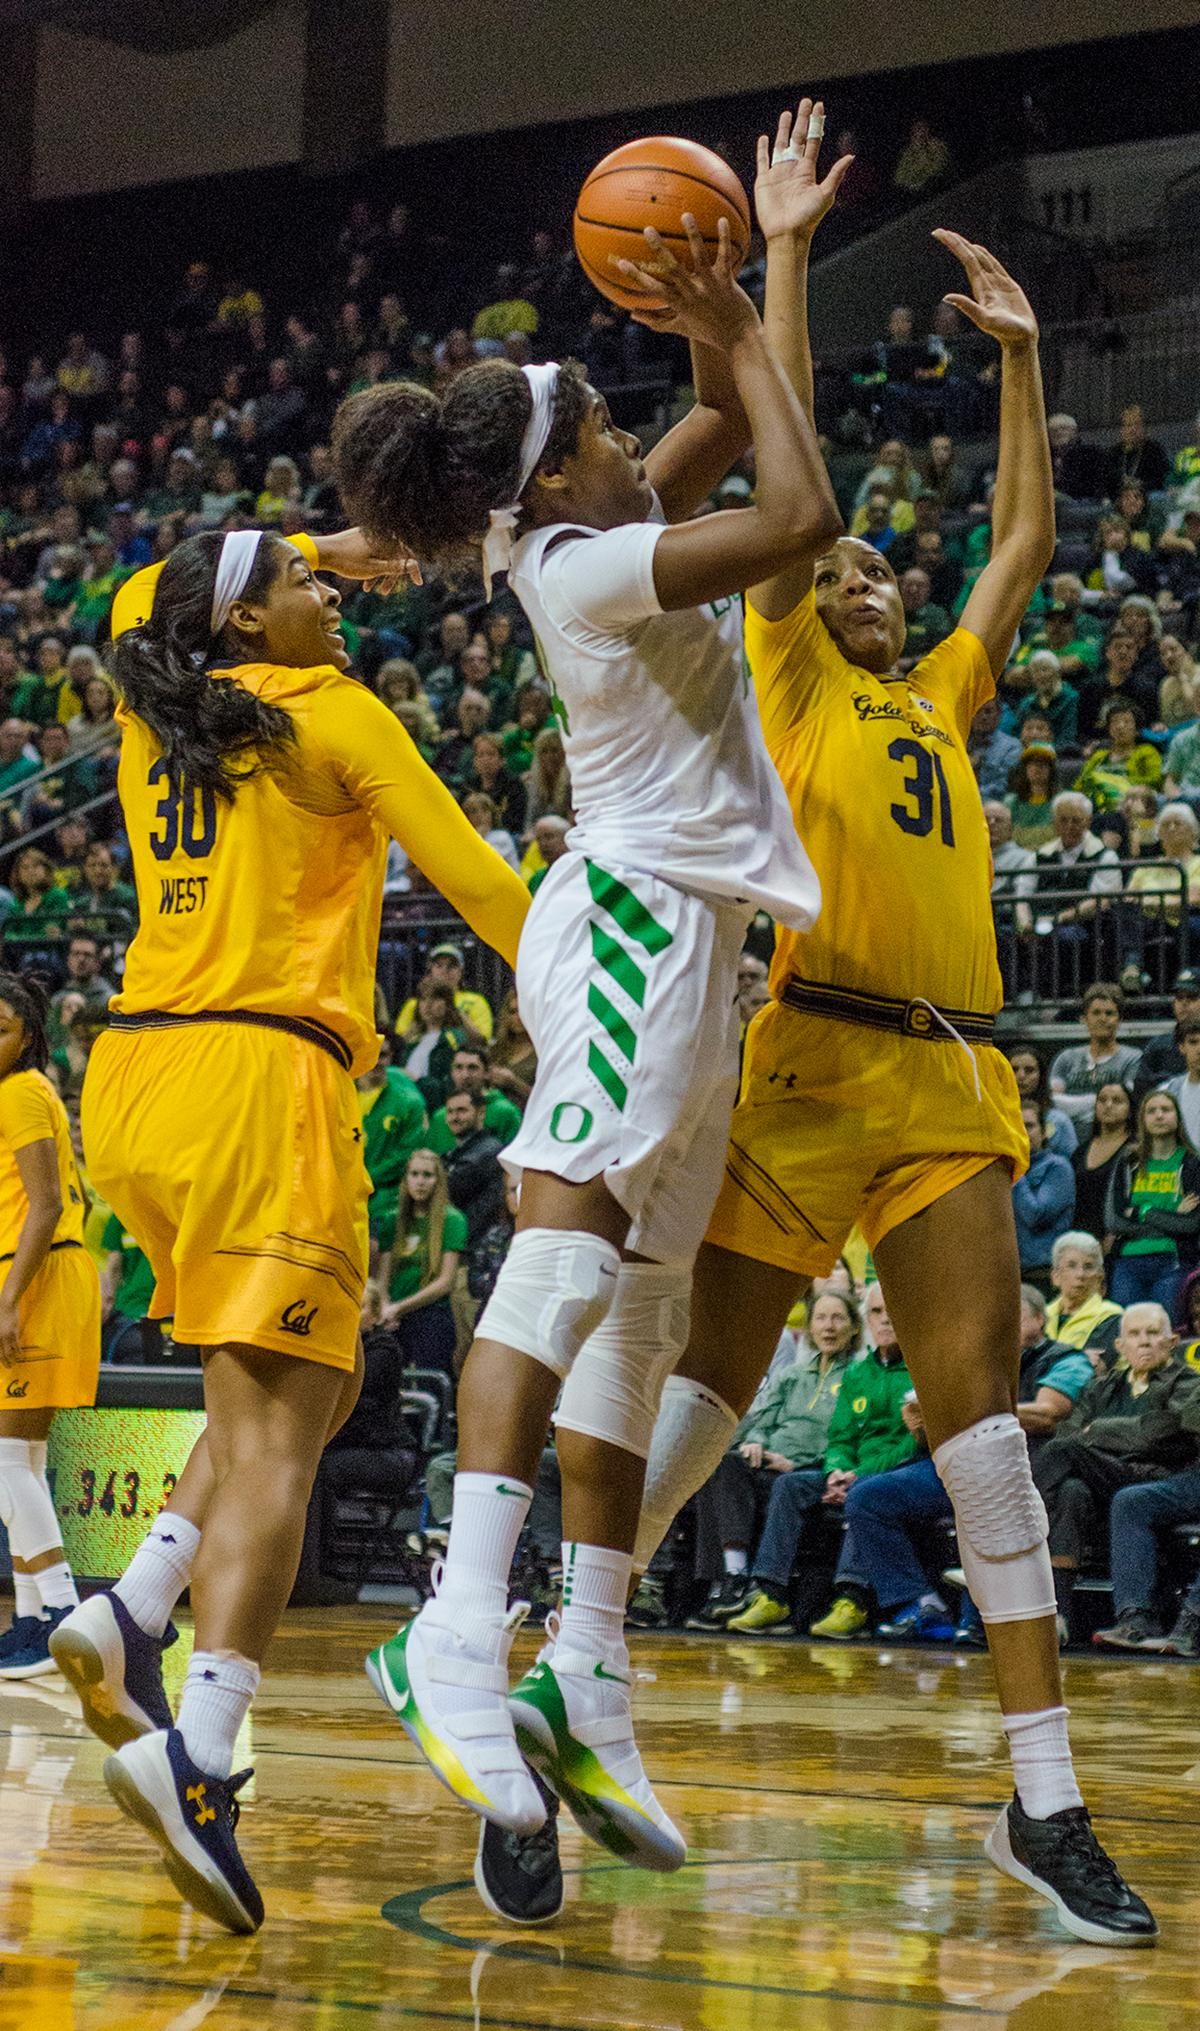 Ruthy Hebard (#24) goes up for a layup against Cal Bears CJ West (#30) and Kristine Anigwe (31). The Oregon Ducks women defeated the Cal Bears 91-54 in Matthew Knight Arena Saturday evening. The Ducks had three players in double digits: Sabrina Ionescu with 28 points; Ruthy Hebard with 18 points; and Satou Sabally with 10 points. The Ducks now stand at 10-1 in conference play and Cal drops to 6-5. Photo by Emily Gonzalez, Oregon News Lab